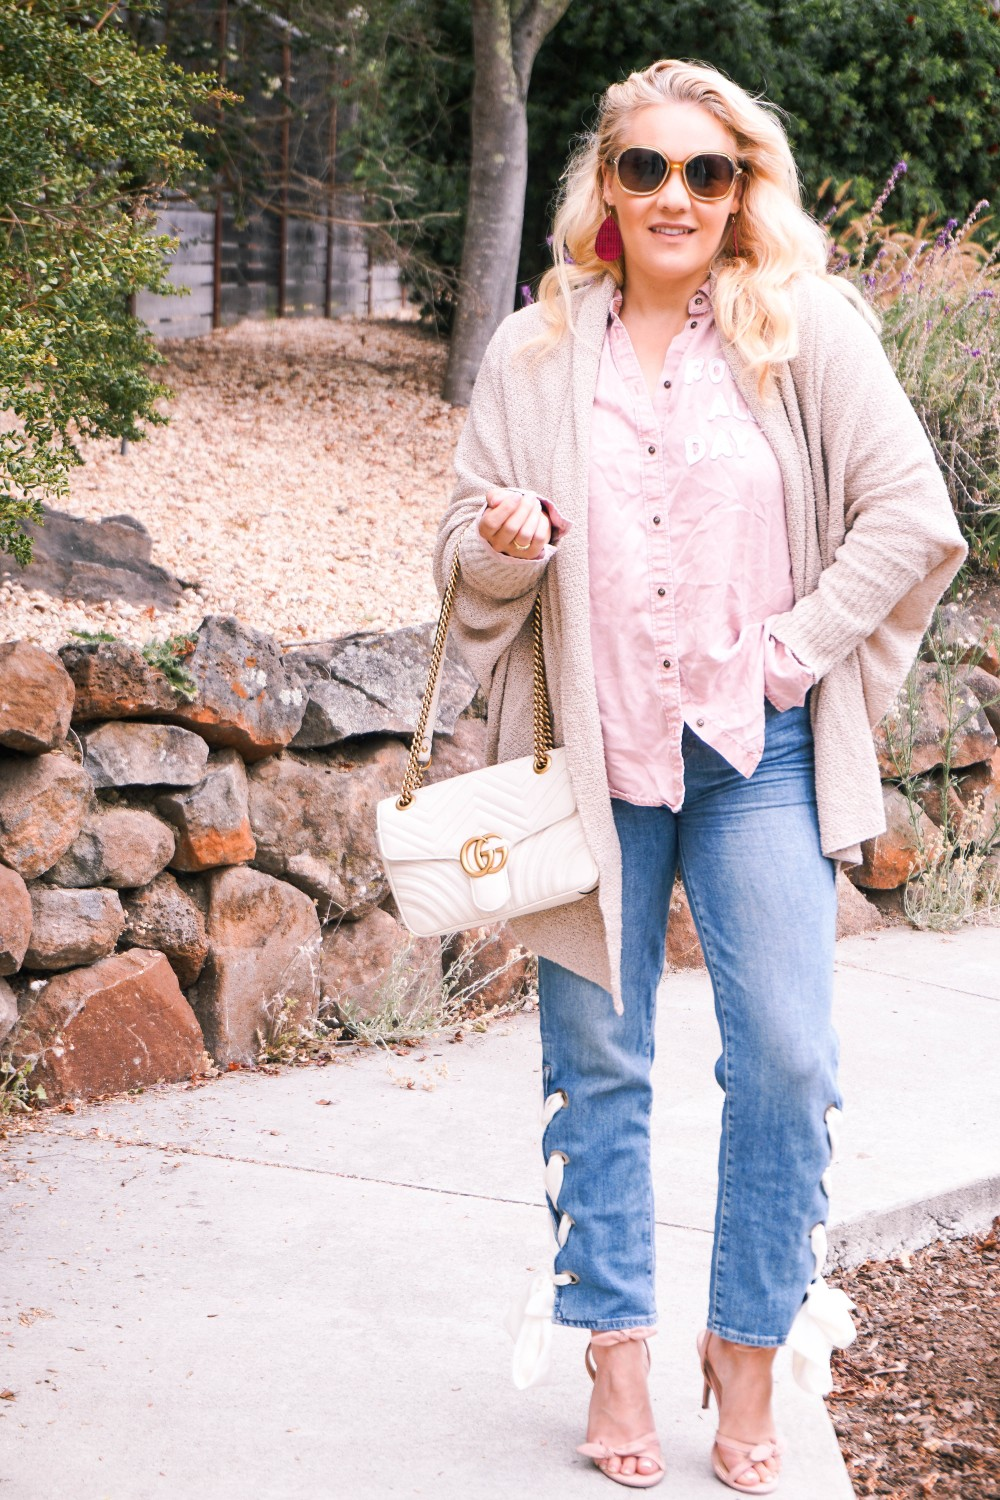 Fall Casual Mom Style-Rachel Parcell Everyday Shop-Lightweight Cardigan-Have Need Want